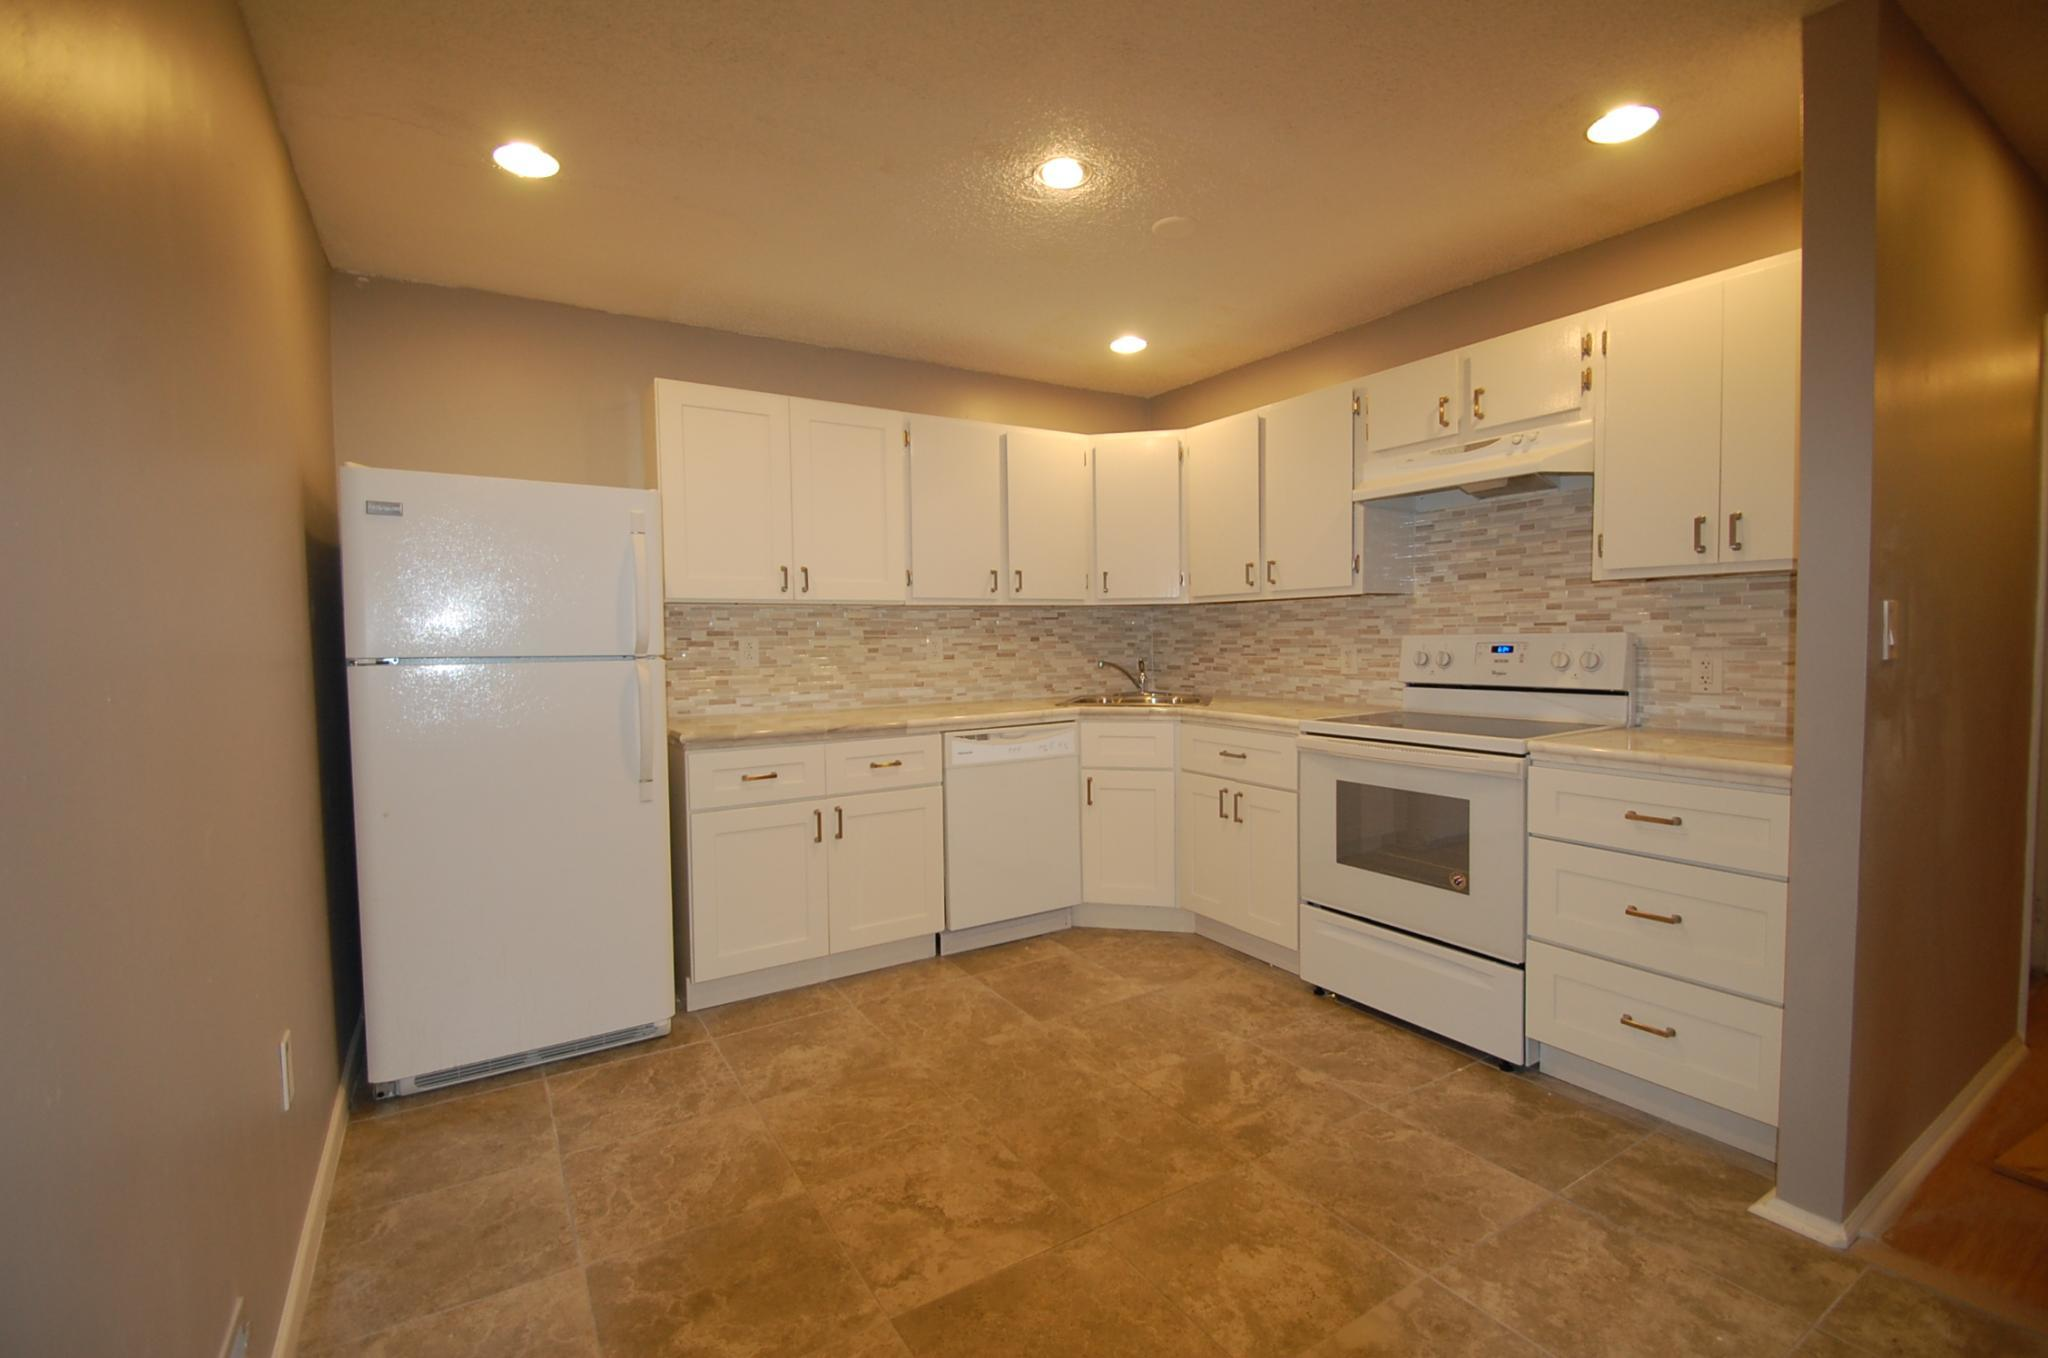 66 Canterbury Ct #66, Piscataway, NJ 08854 For Rent | Trulia